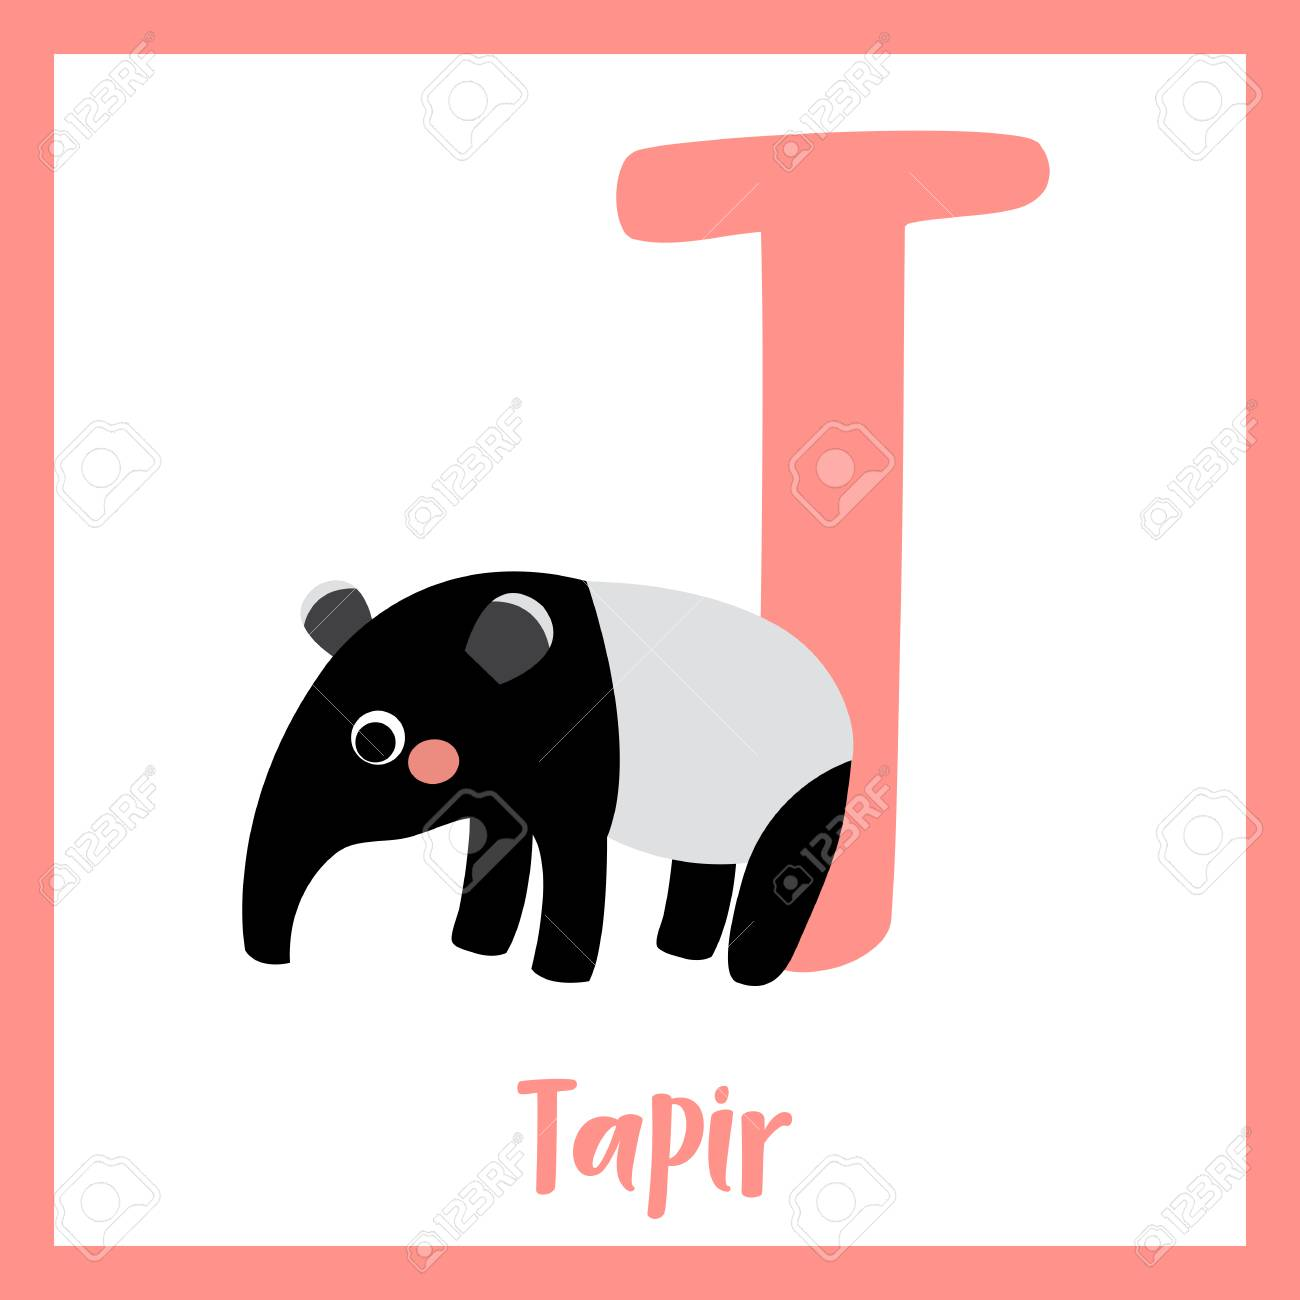 T Letter Vocabulary Standing Tapir Cute Children Abc Zoo Alphabet Royalty Free Cliparts Vectors And Stock Illustration Image 73324914